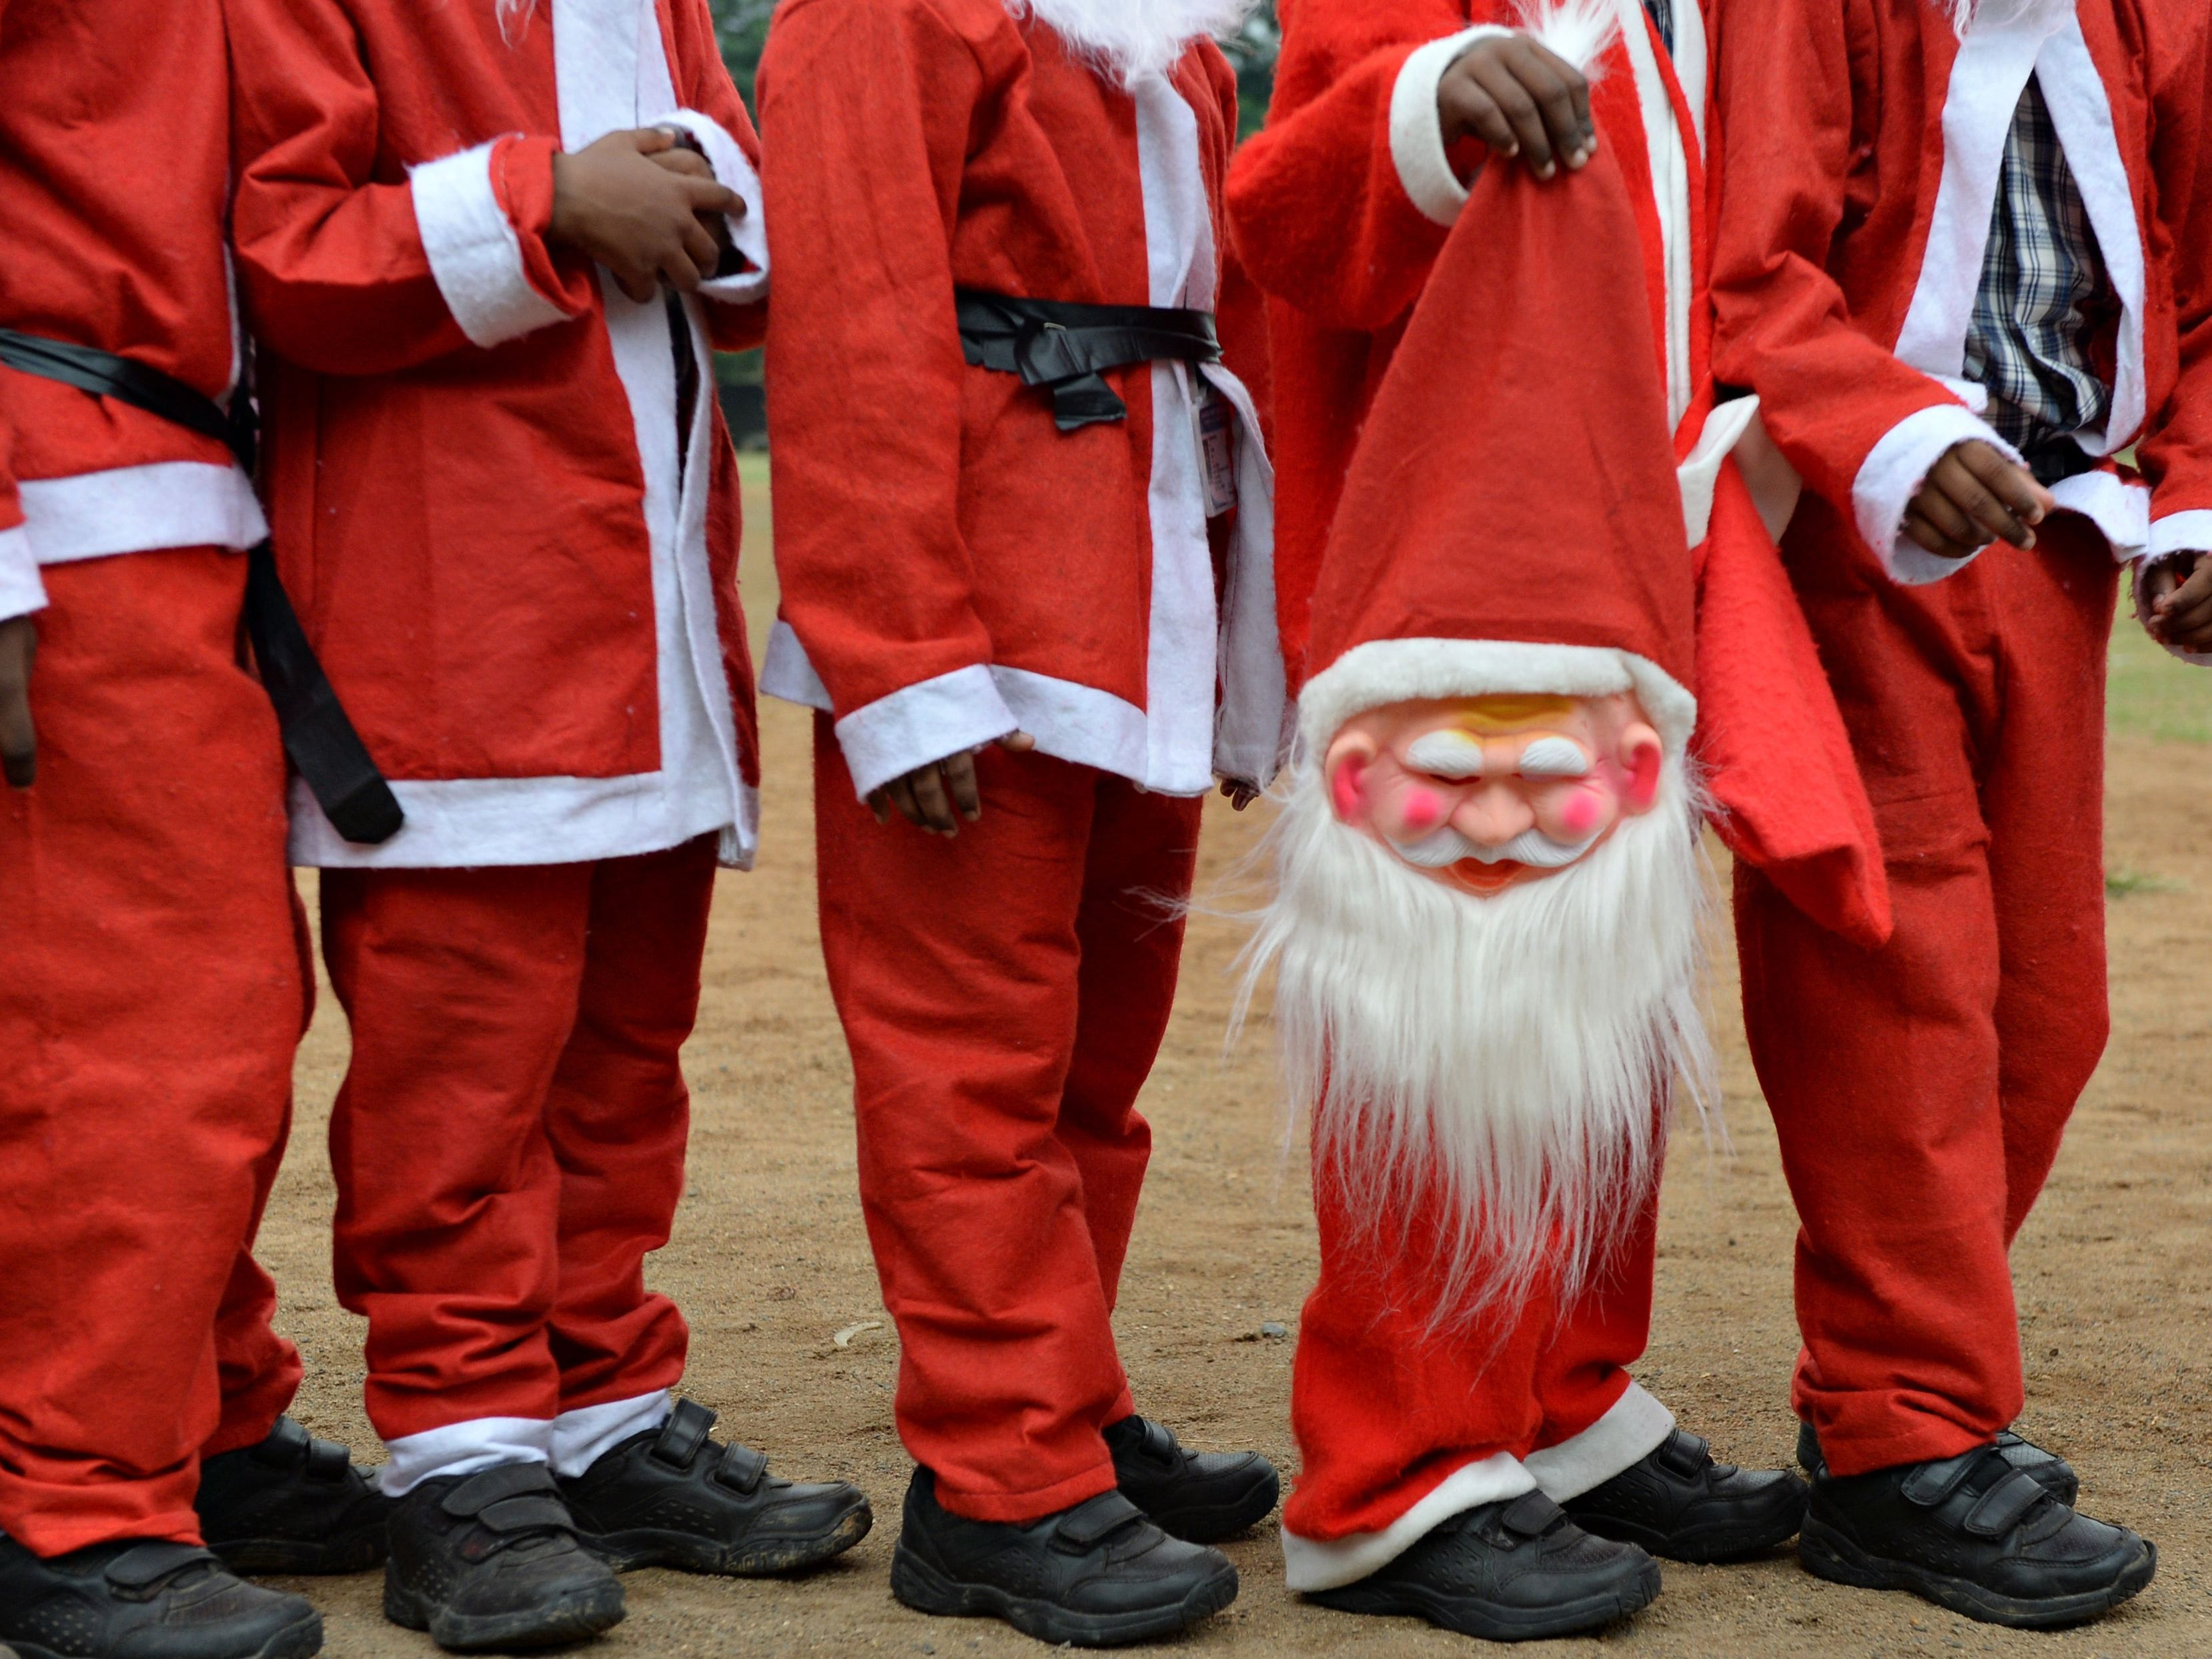 Indian schoolchildren dressed as Santa Claus pose as they take part in a Christmas event at a school in Chennai, India,  Dec. 5, 2018.